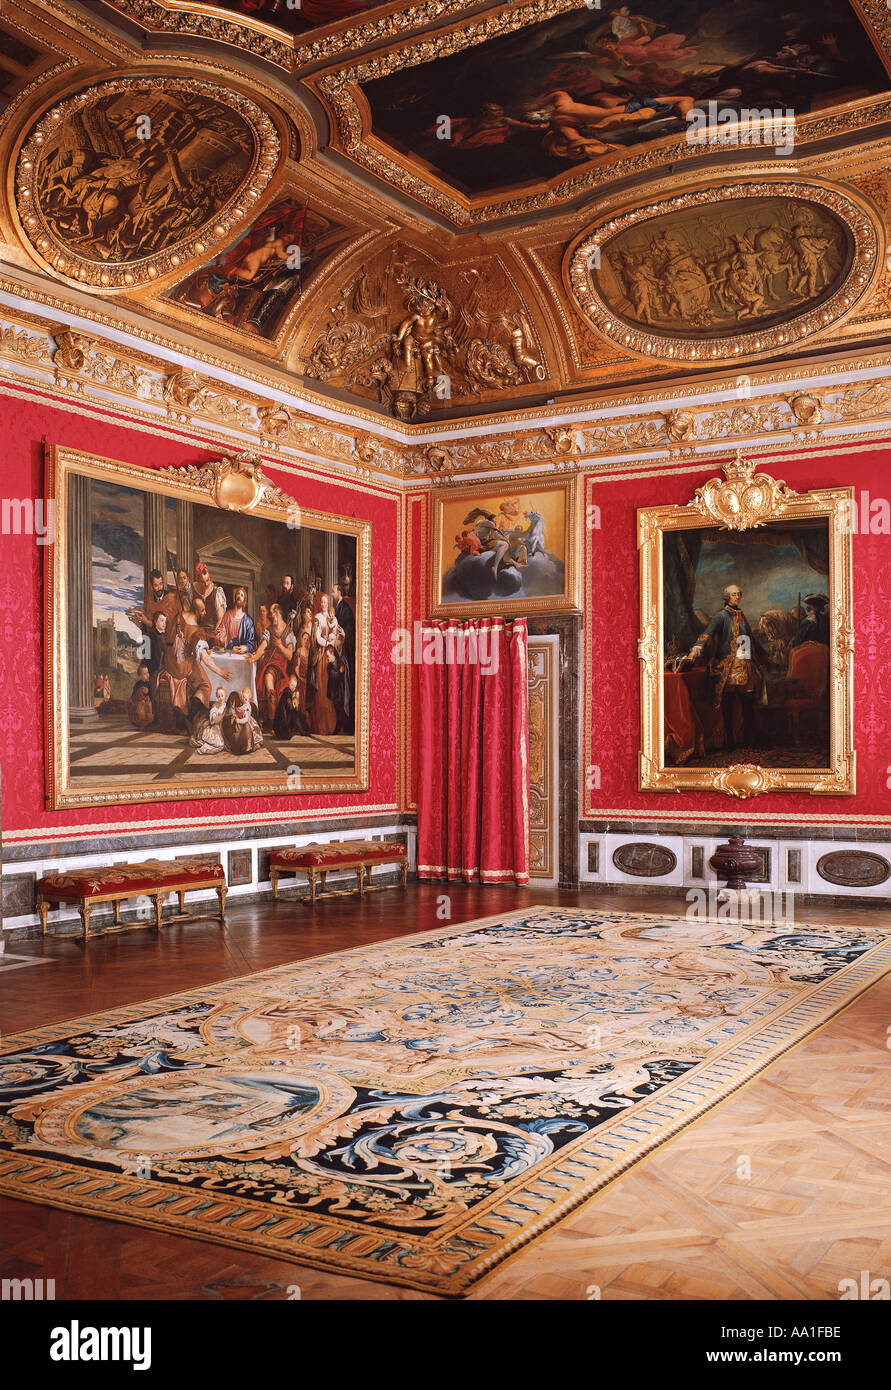 Palace of versailles salon de mars stock photo royalty for Salon de versailles